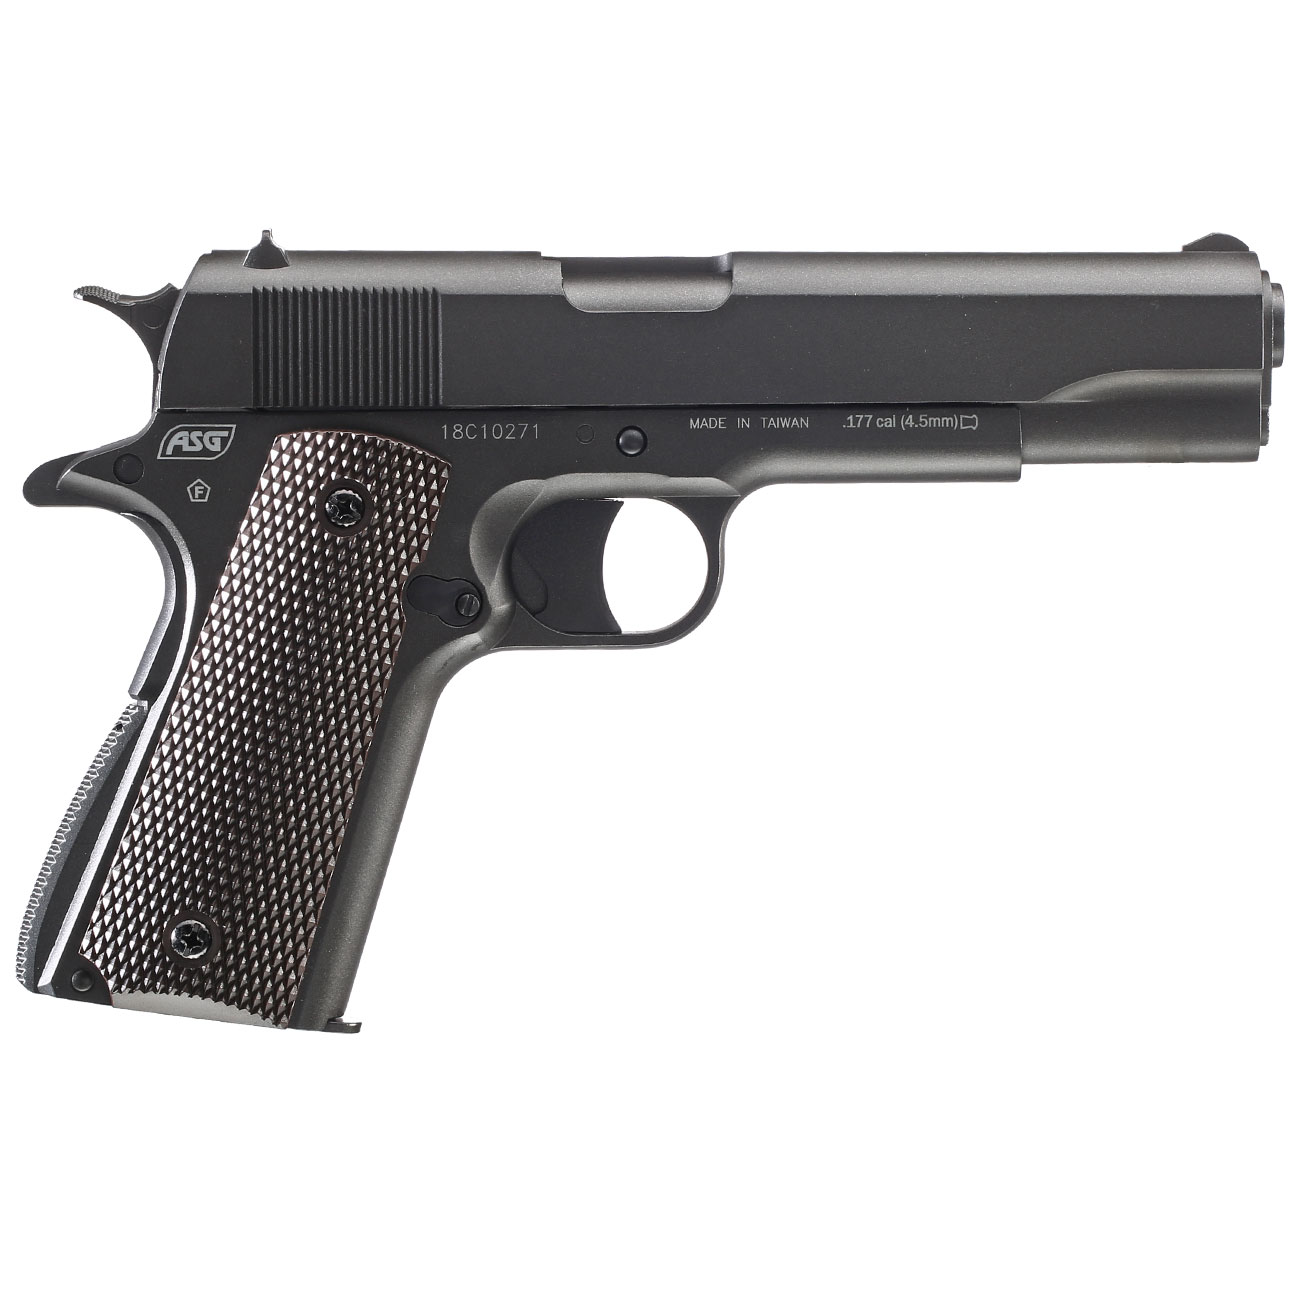 Dan Wesson Valor 1911 CO2-Luftpistole Kal. 4,5mm Diabolo Non-Blowback 3